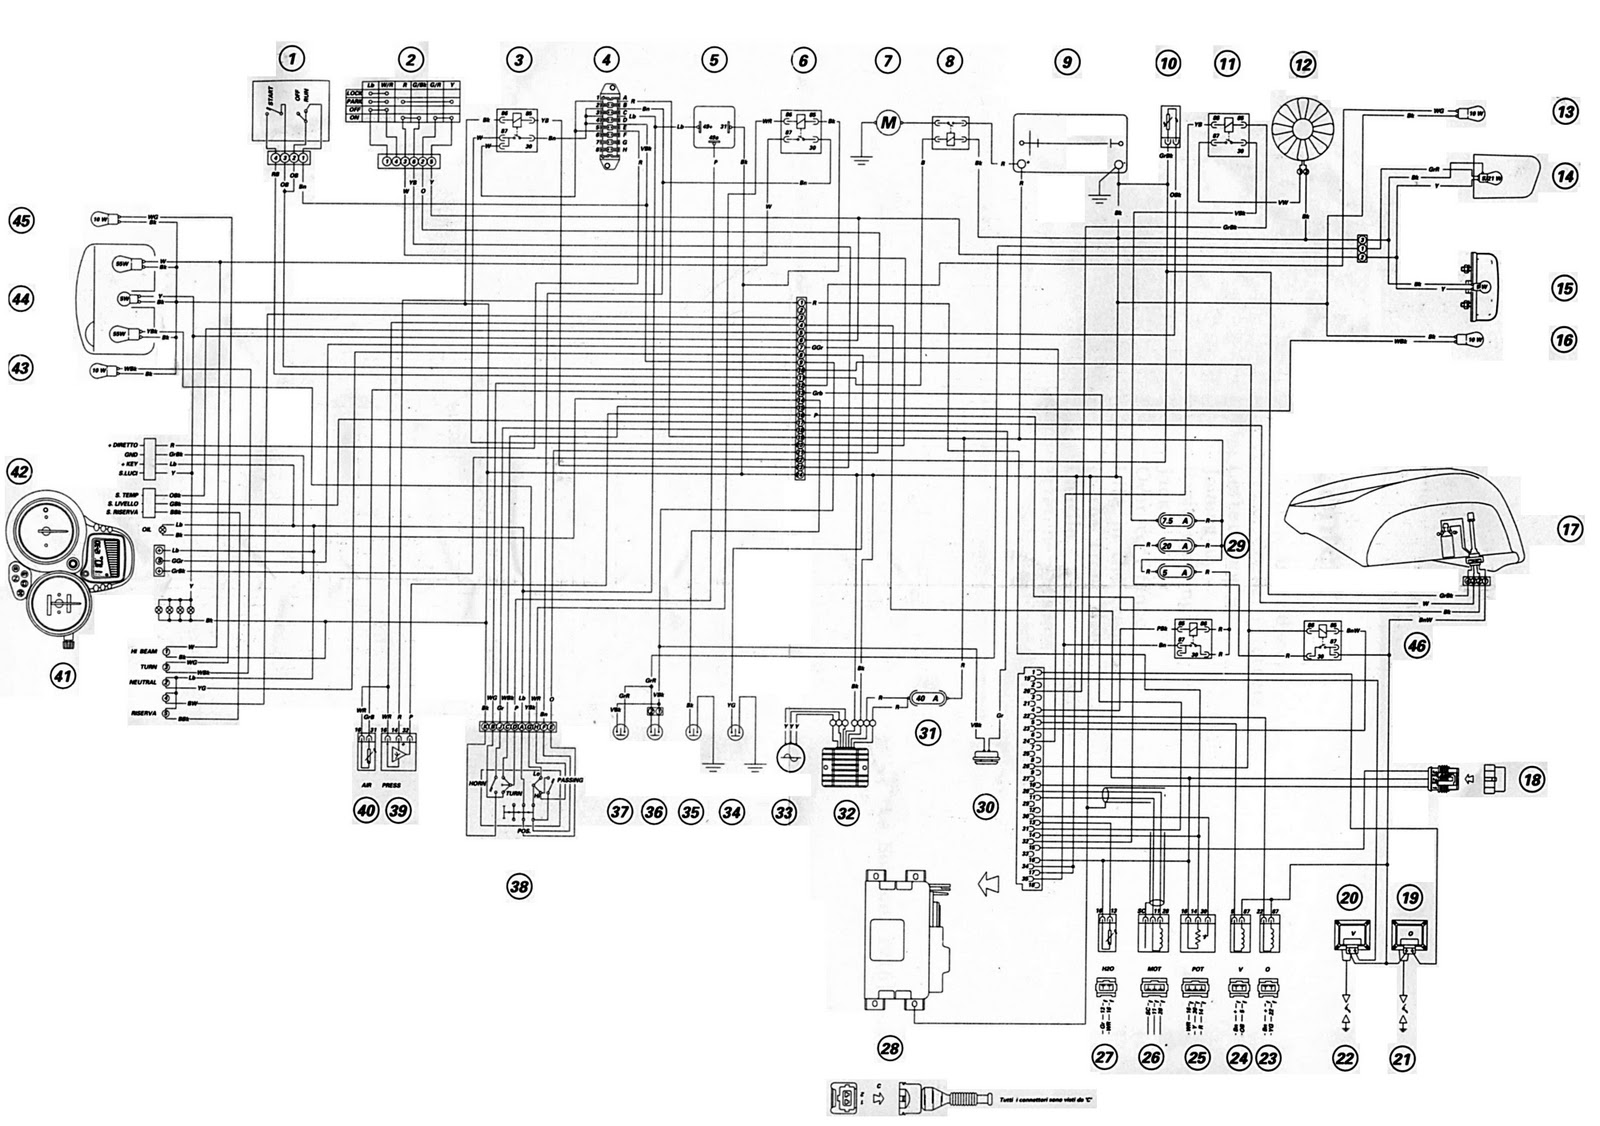 05 grand am wiring diagram